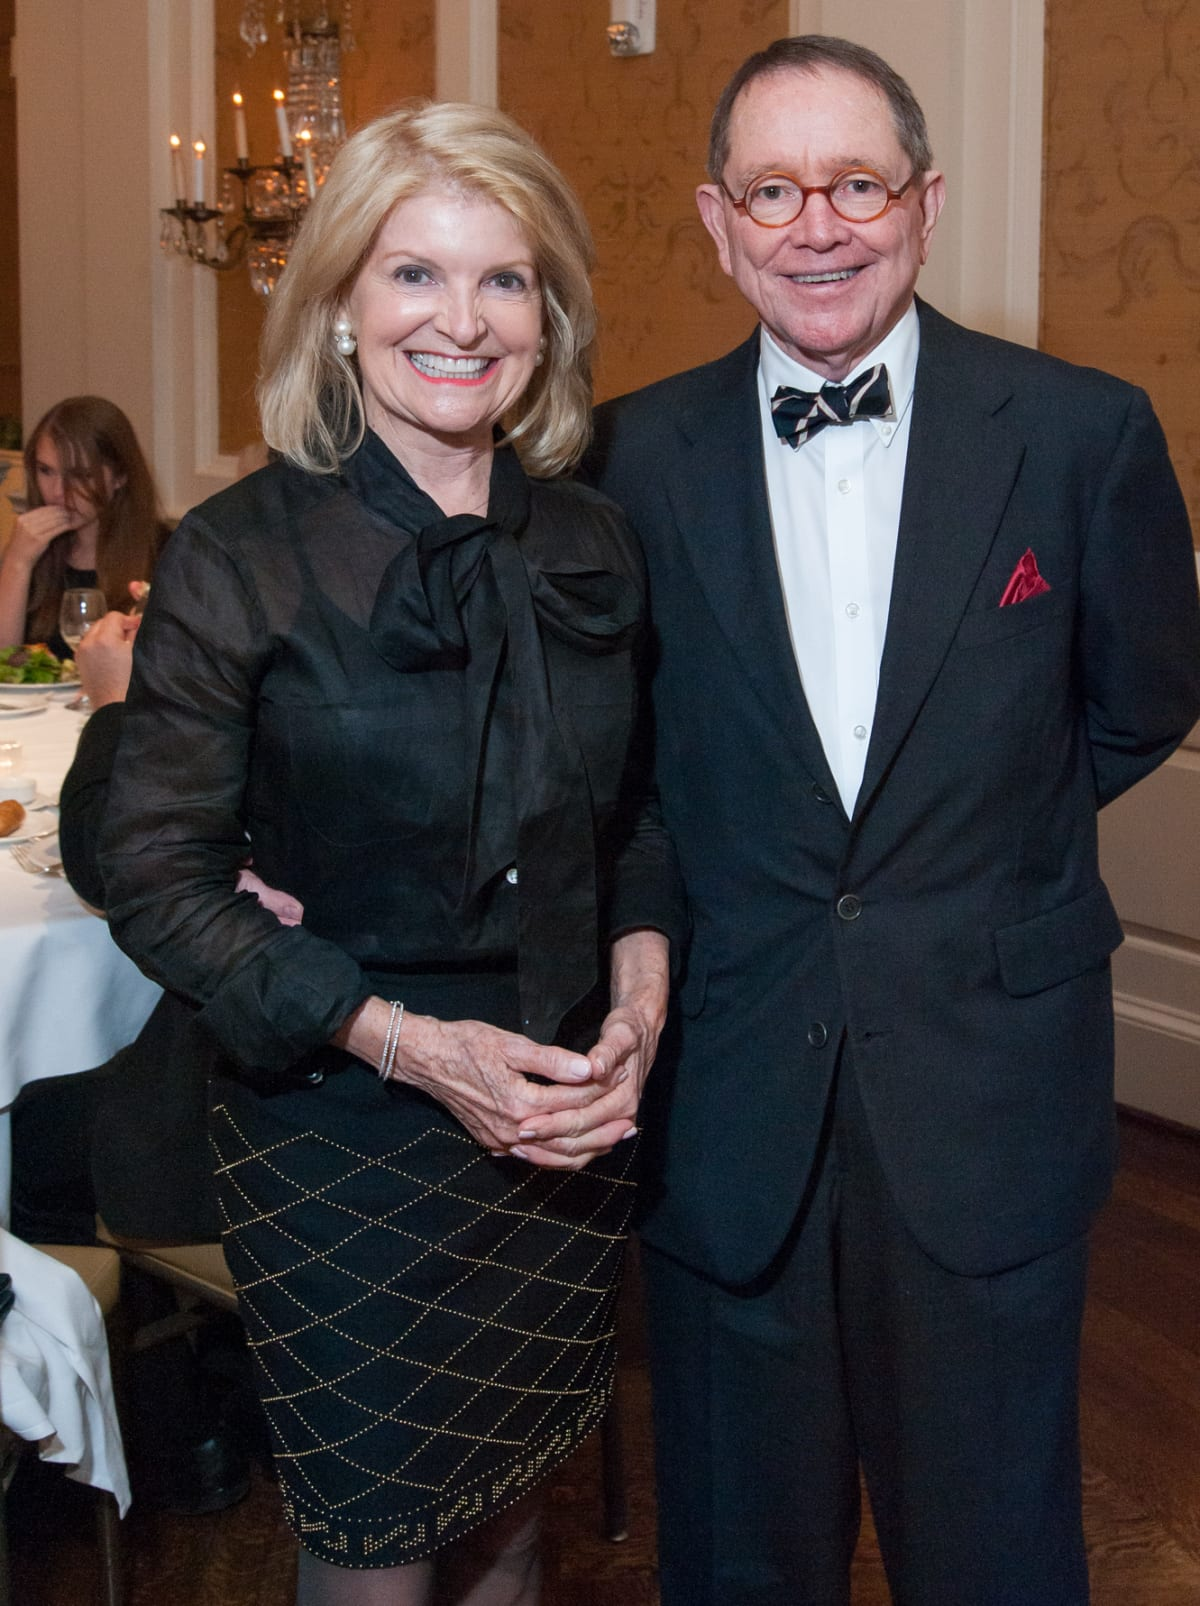 Houston, River Oaks Chamber Orchestra Gala, October 2015, Cora Bess Meyer, Will Cannady